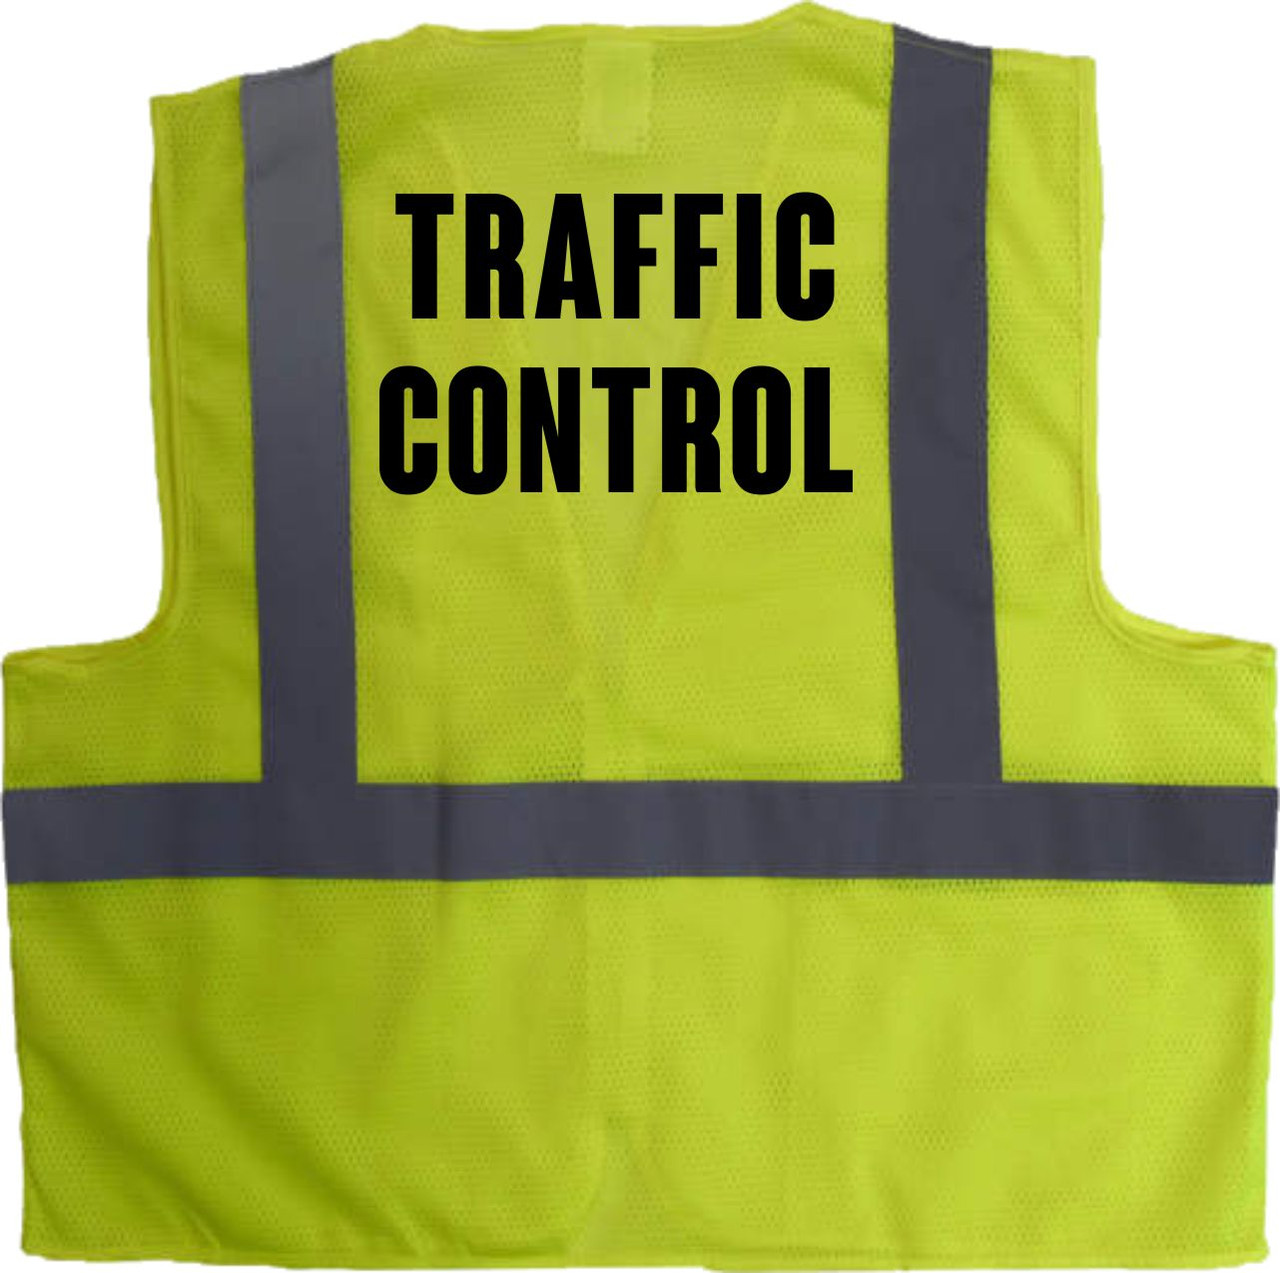 This Hi Vis TRAFFIC CONTROL Vest is an added measure to help your TRAFFIC CONTROL to stand out and be seen.  This class 2 Safety Vest has TRAFFIC CONTROL printed boldly on the front and the back.